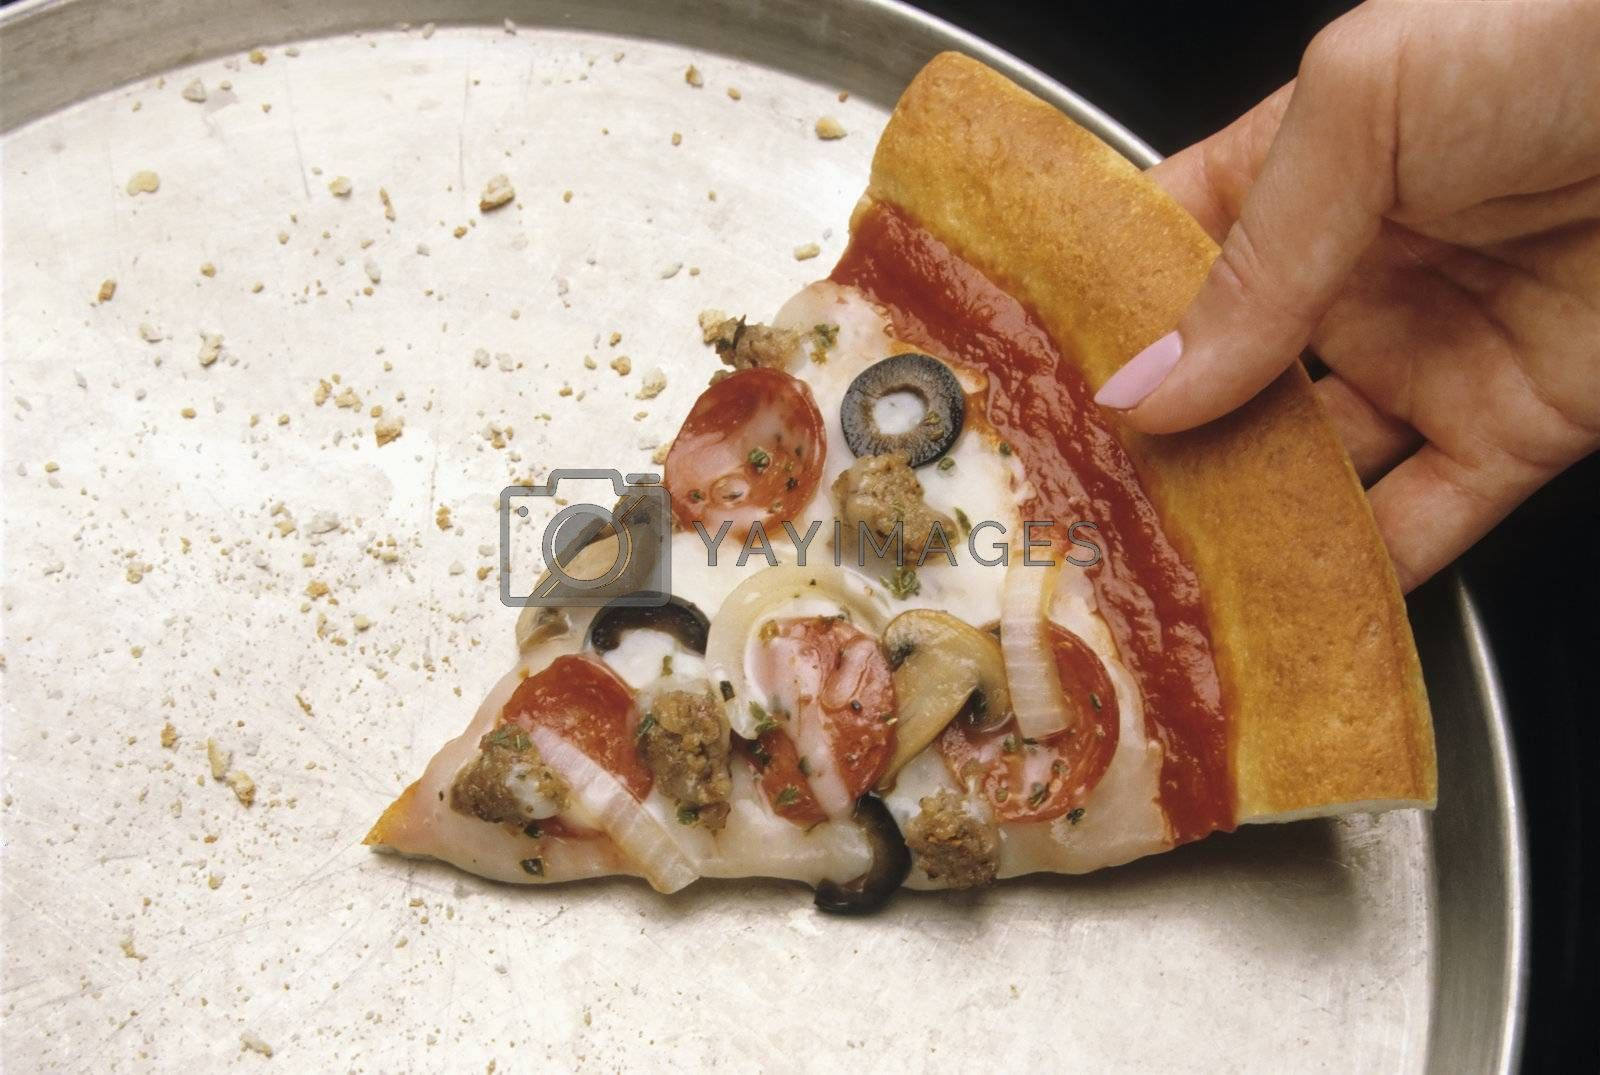 Hand reaching for the last slice of a pepperoni pizza